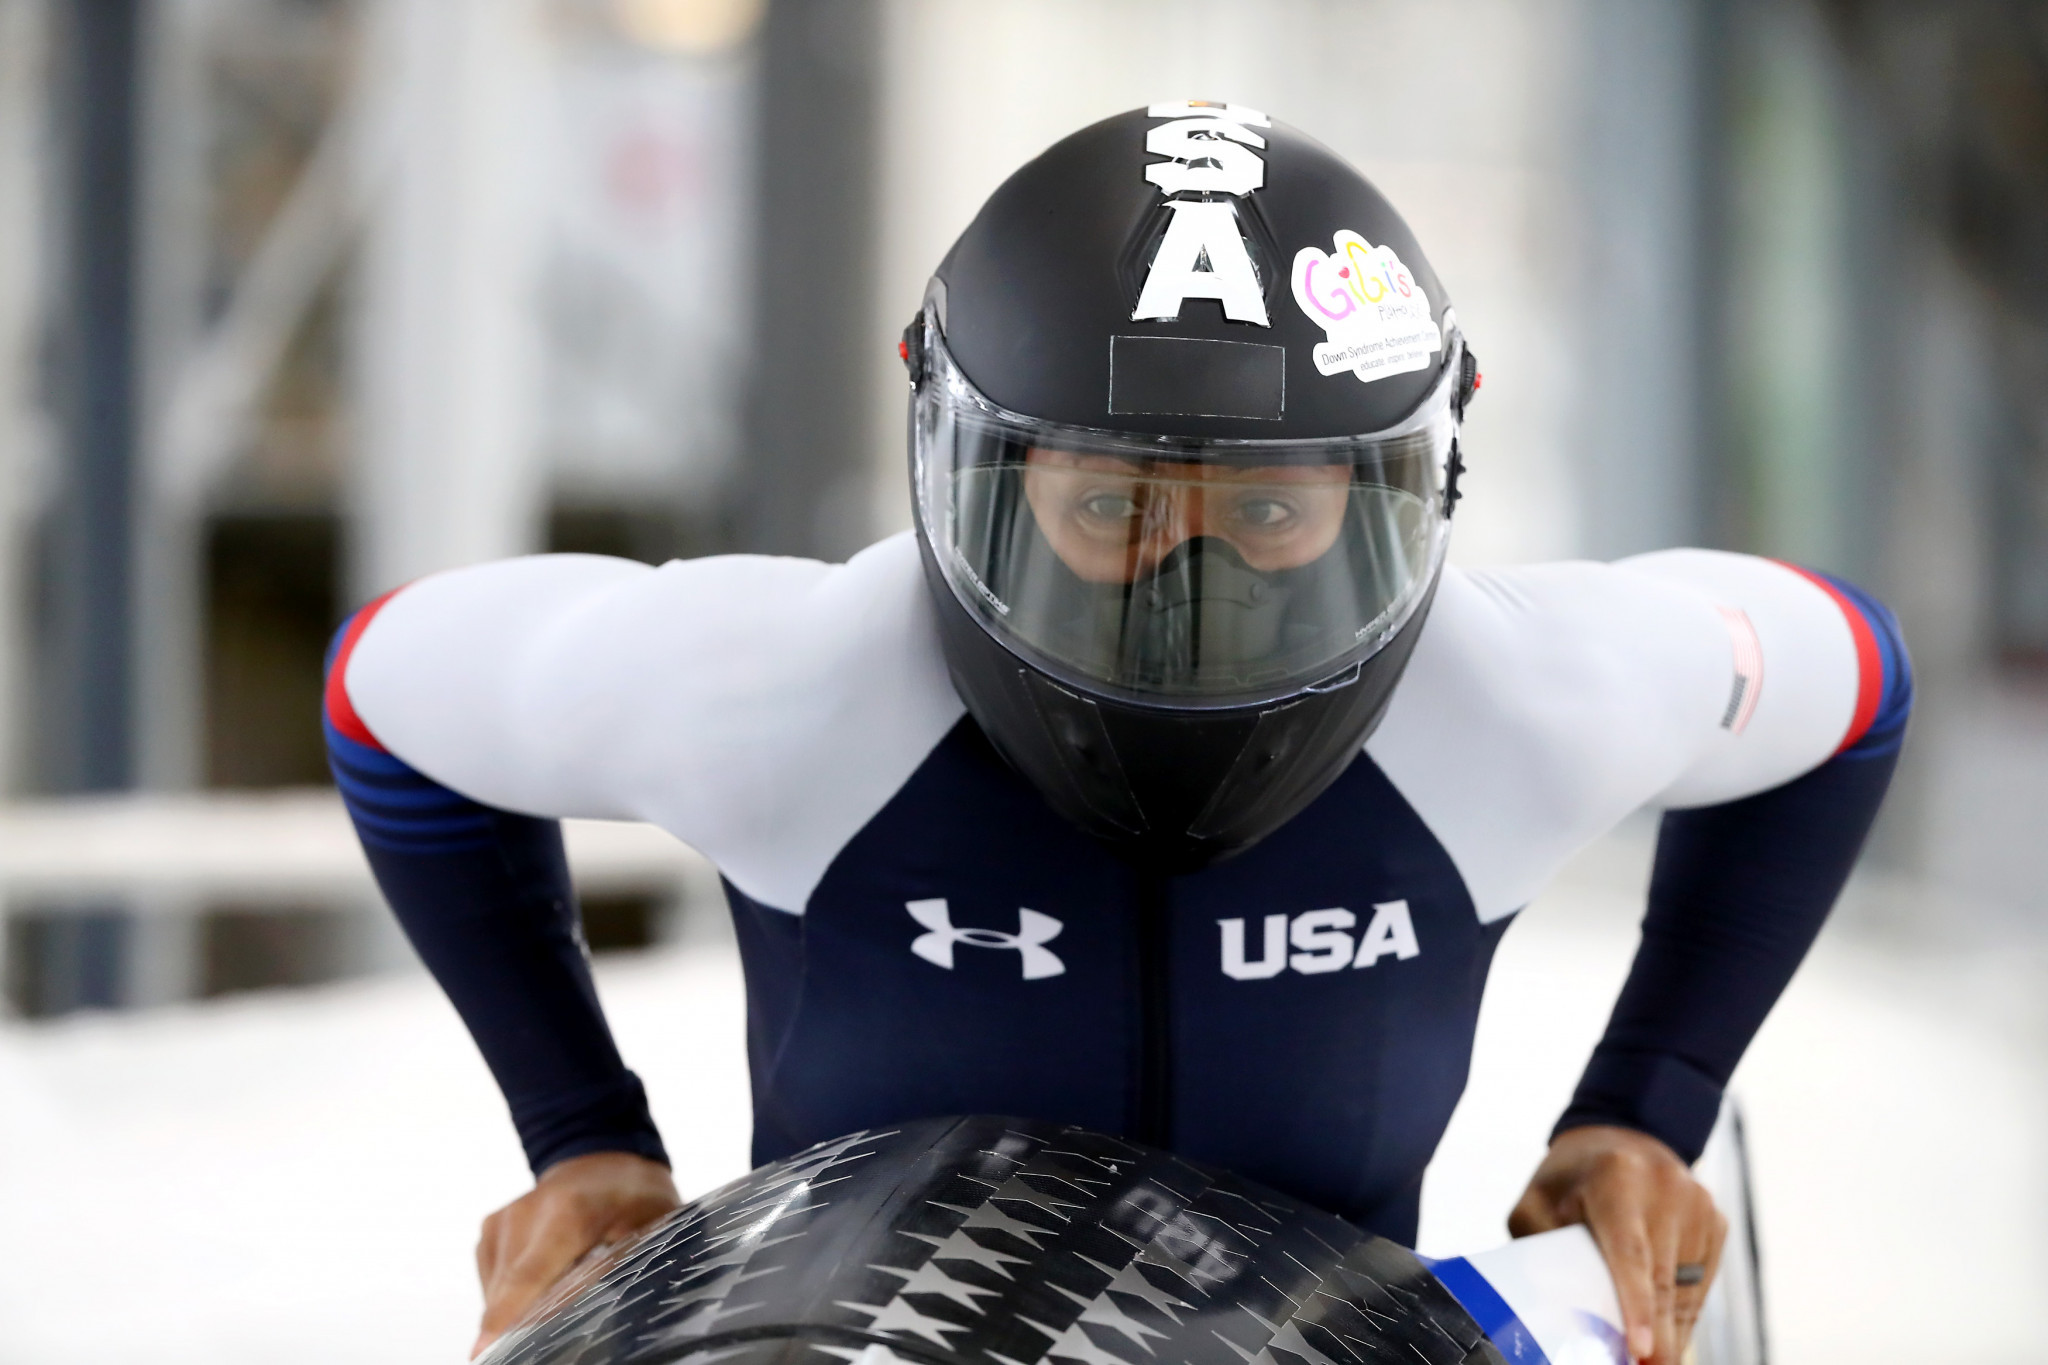 Elana Meyers Taylor won a silver medal at both the 2014 and 2018 Olympics as well as bronze at Vancouver 2010 ©Getty Images